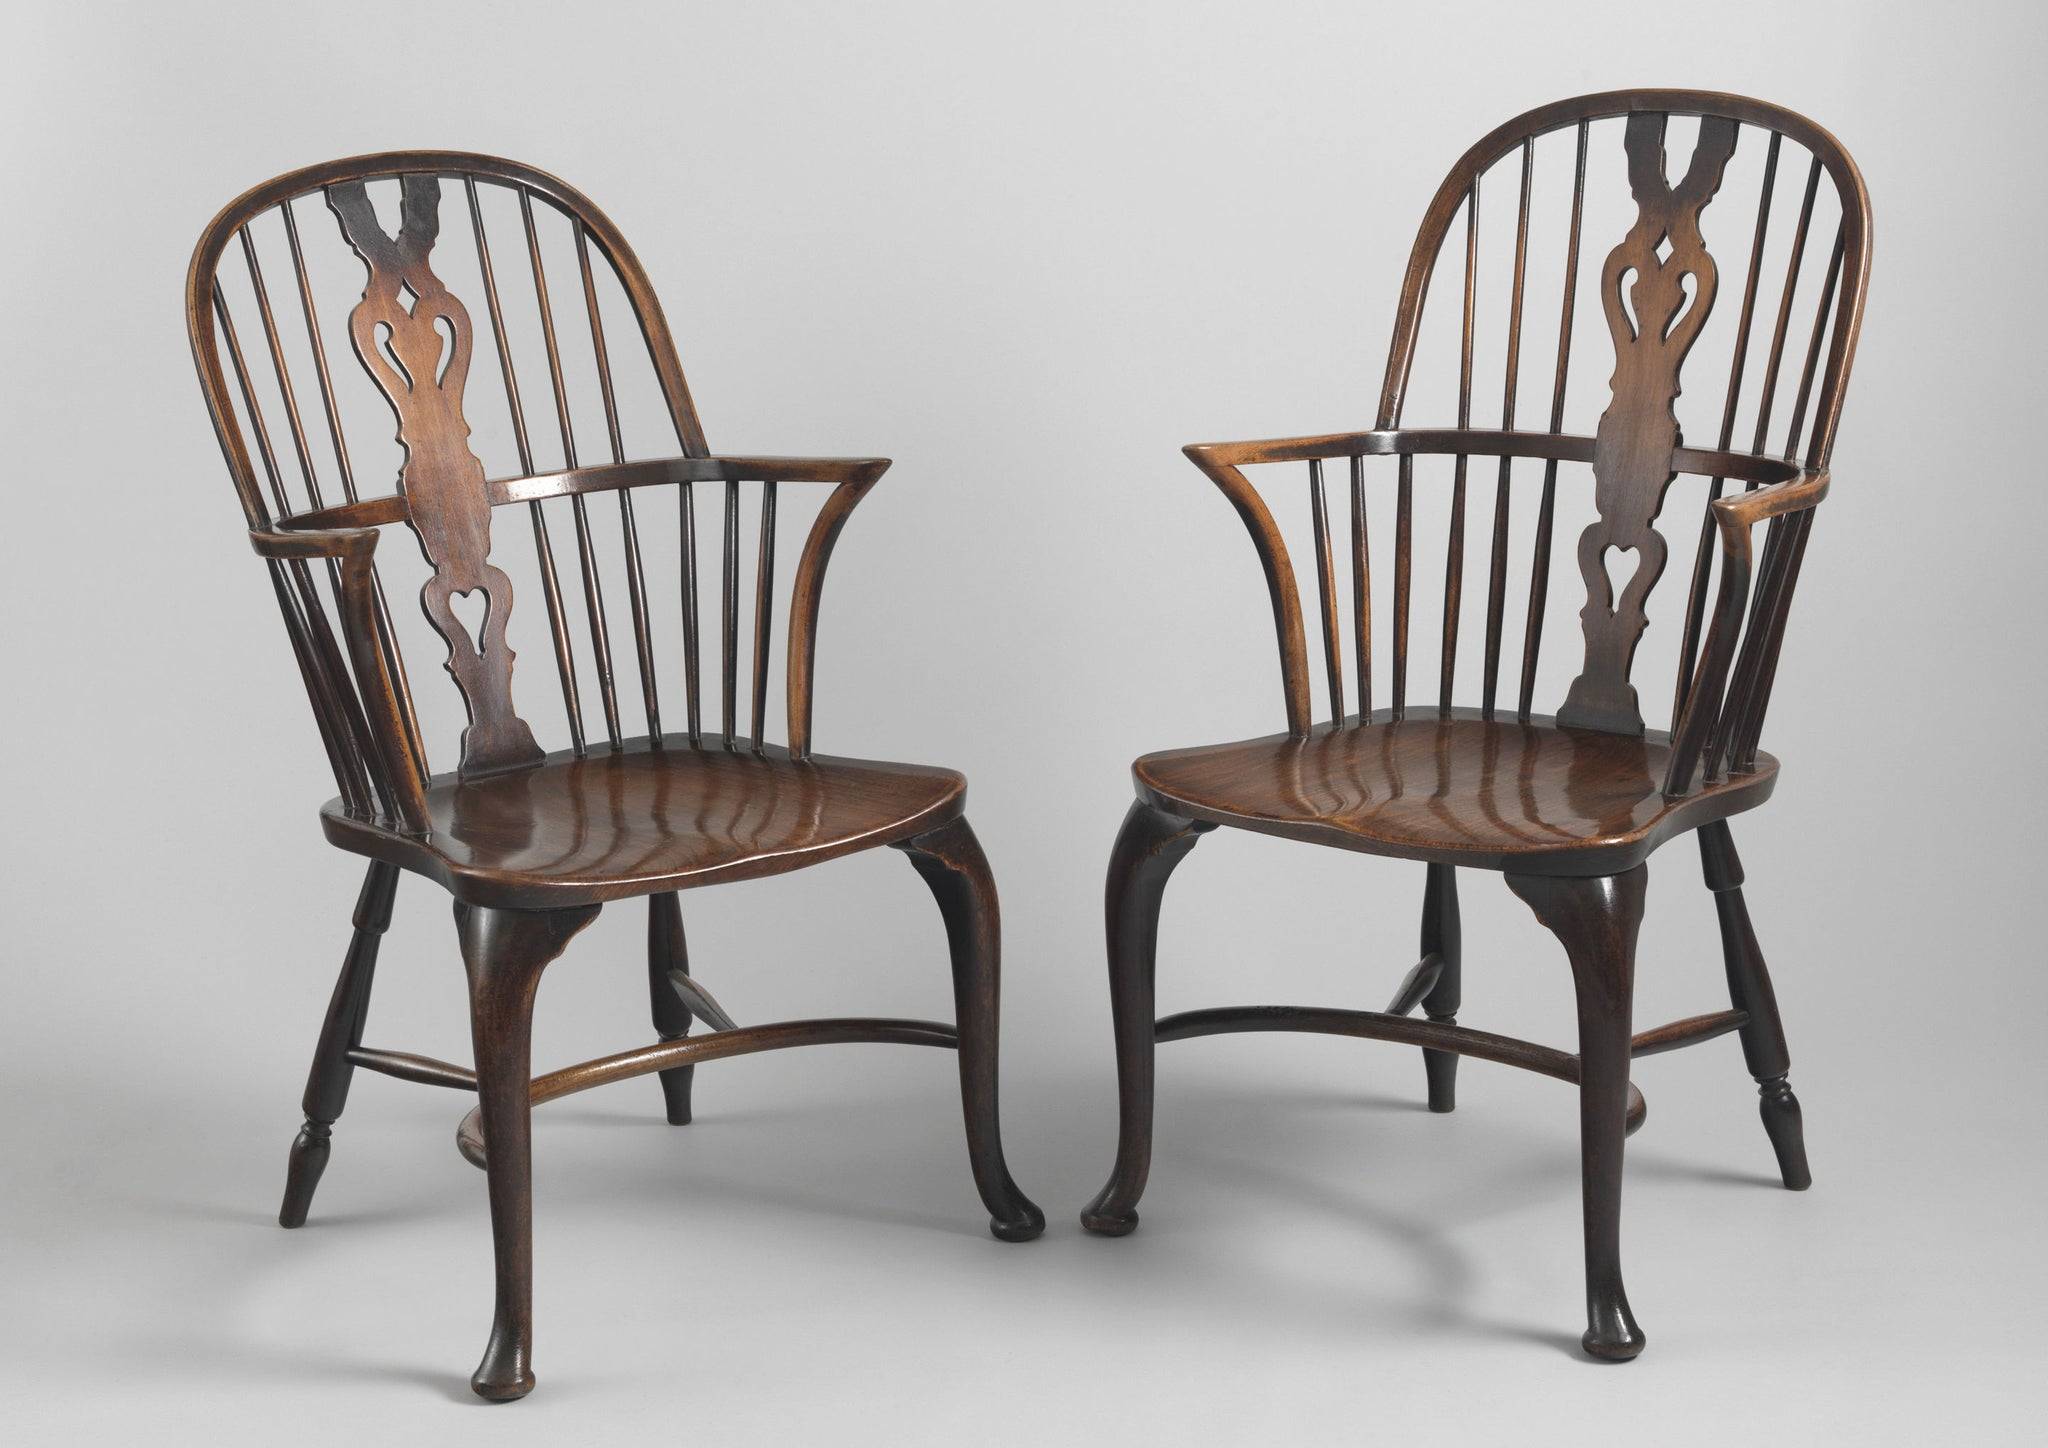 Refined Pair of Cabriole Legged Windsor Armchairs